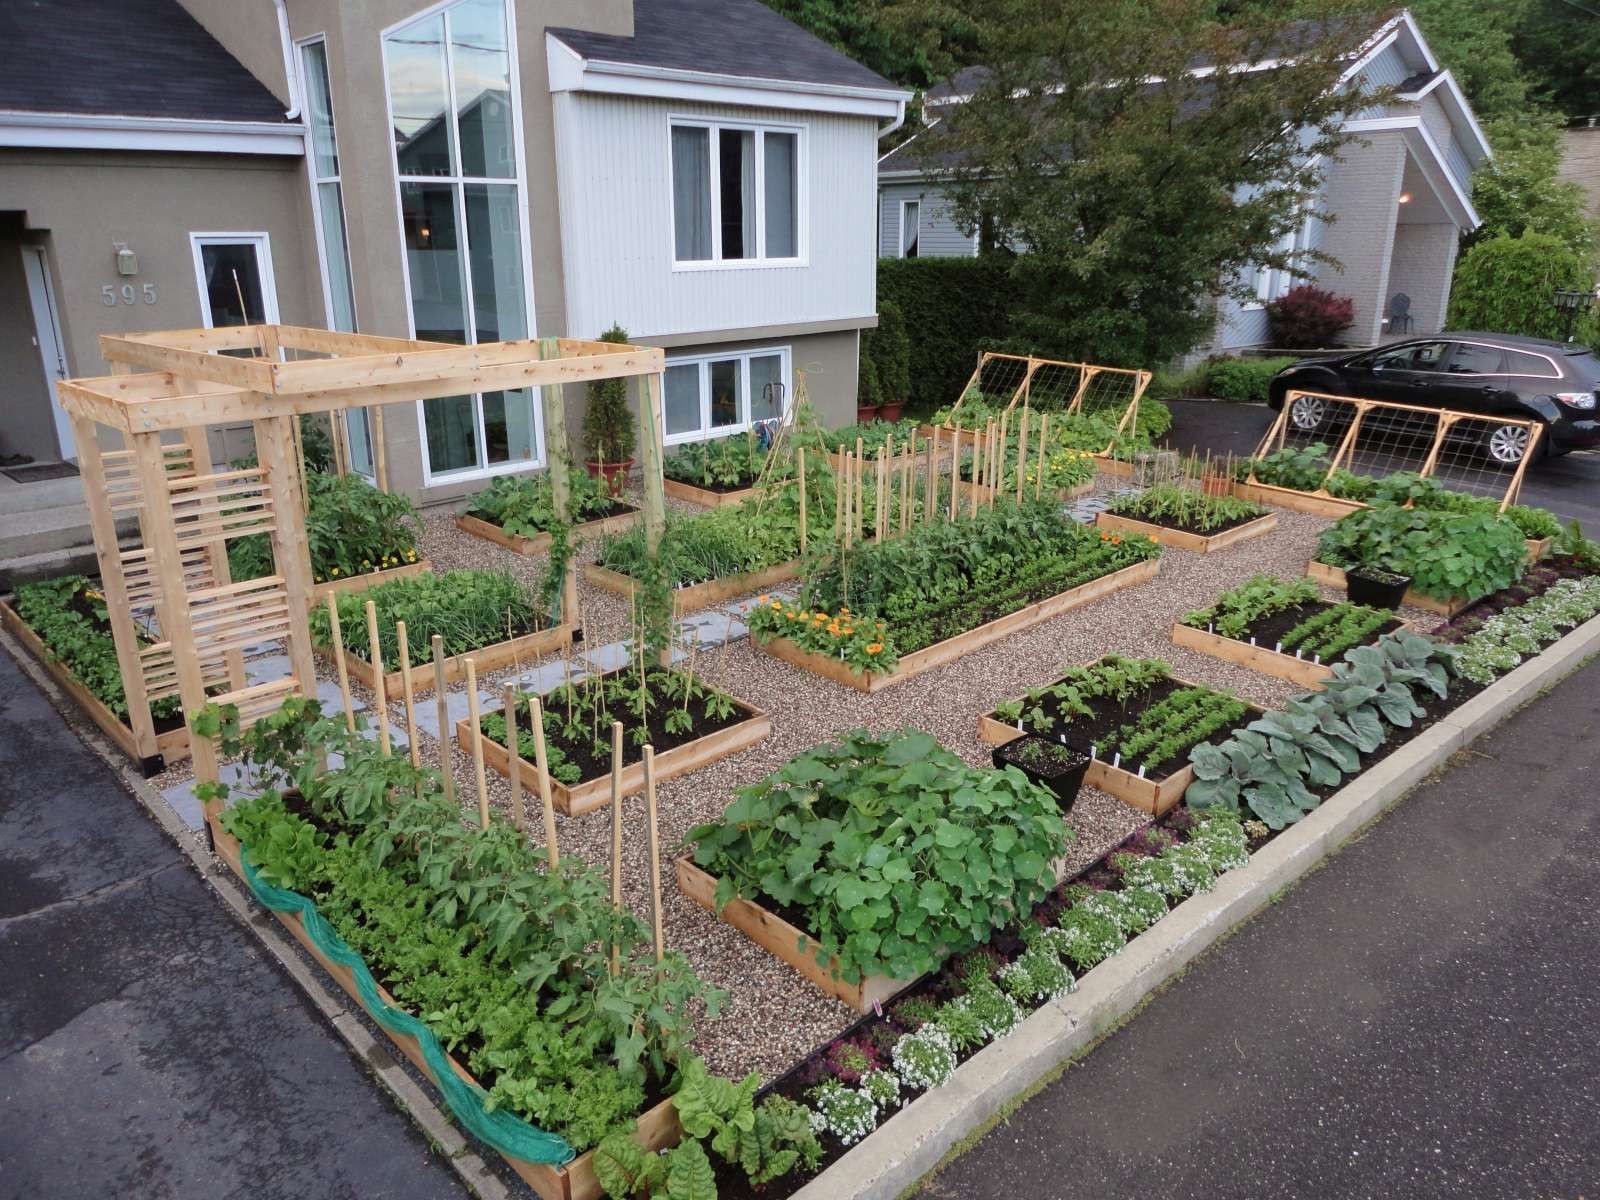 Front Yard Garden Ideas front yard garden ideas designs Find This Pin And More On Garden Backyard Garden Design Ideas With Front Yard Vegetable Garden